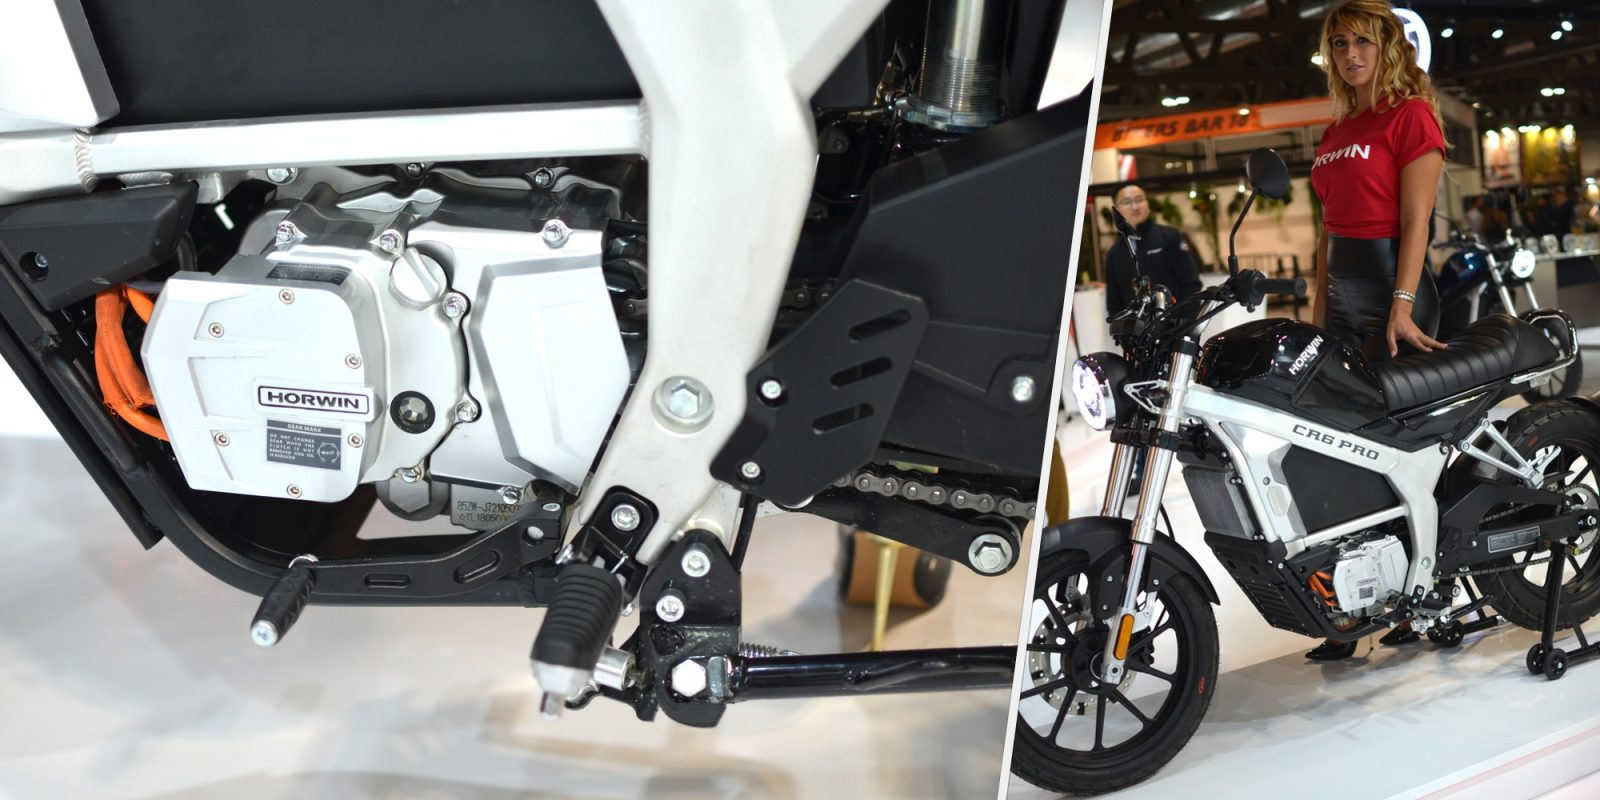 Horwin's 65 MPH gear-shifting electric motorcycles actually look pretty rad